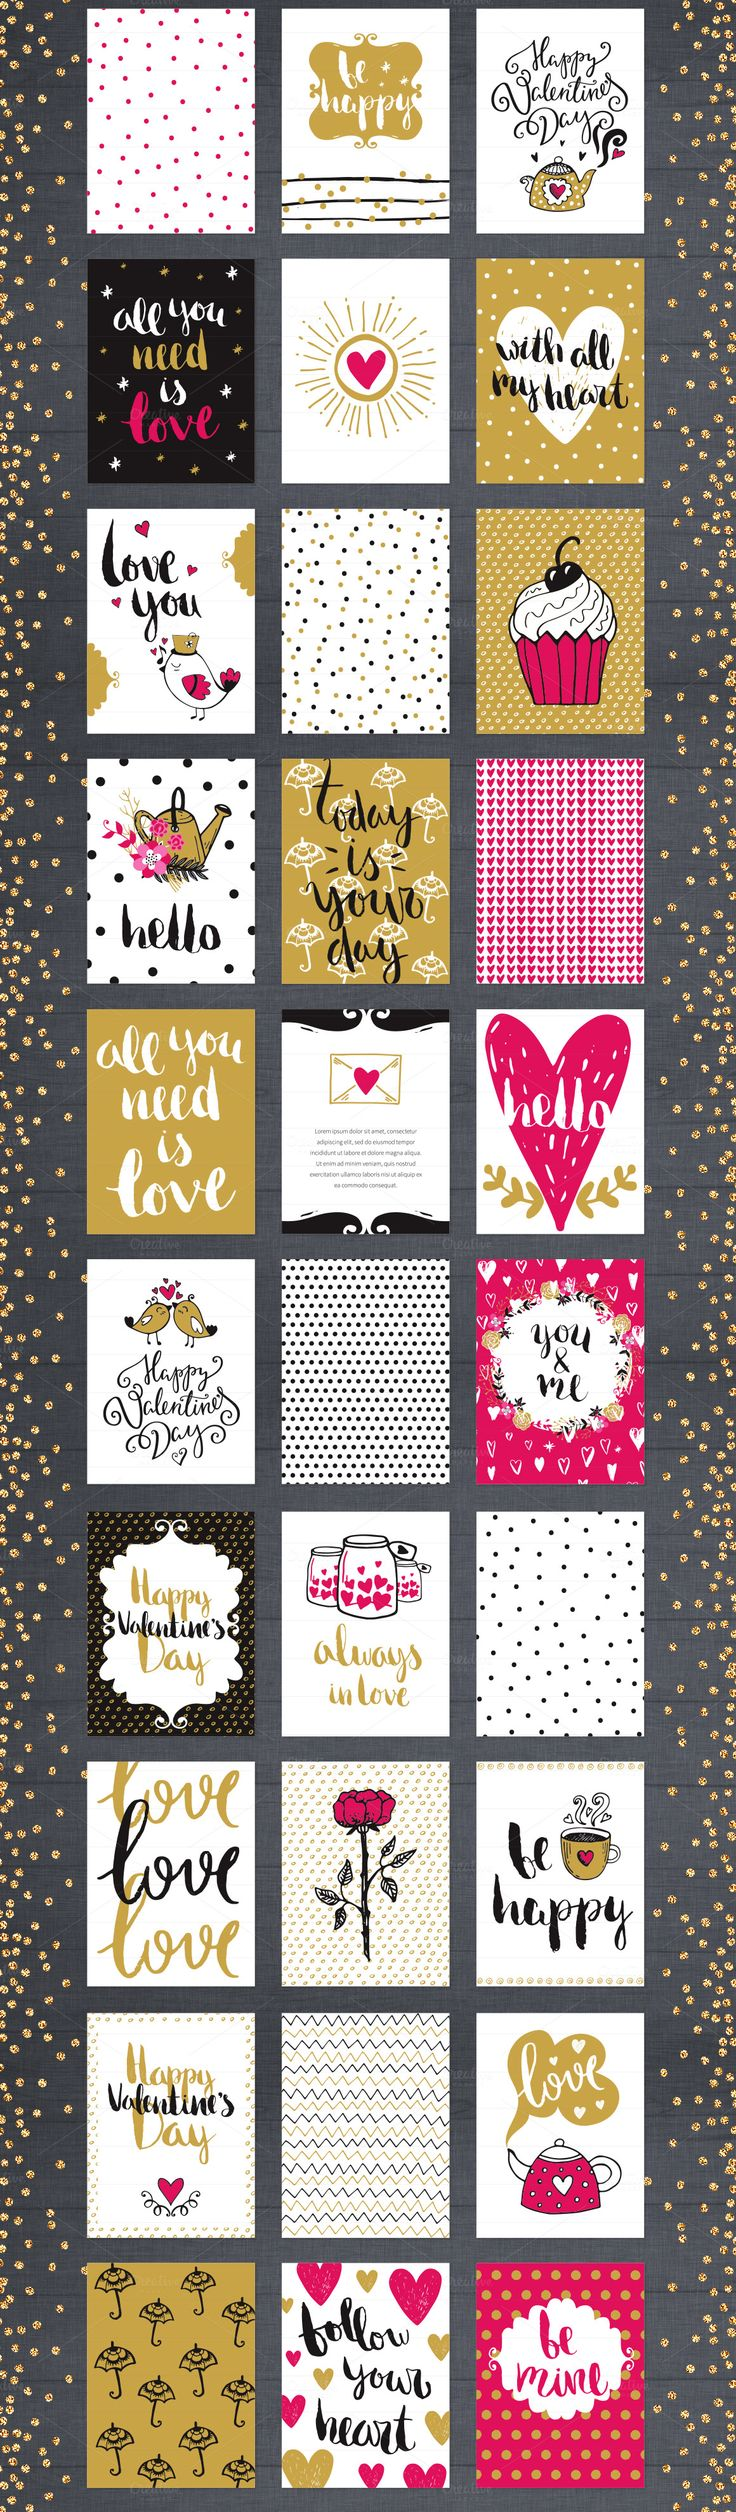 60 Valentine's Day Romantic Cards Collection. Hand drawn vector cute illustration set. Valentine's Day, Romantic and Wedding style. Love theme.